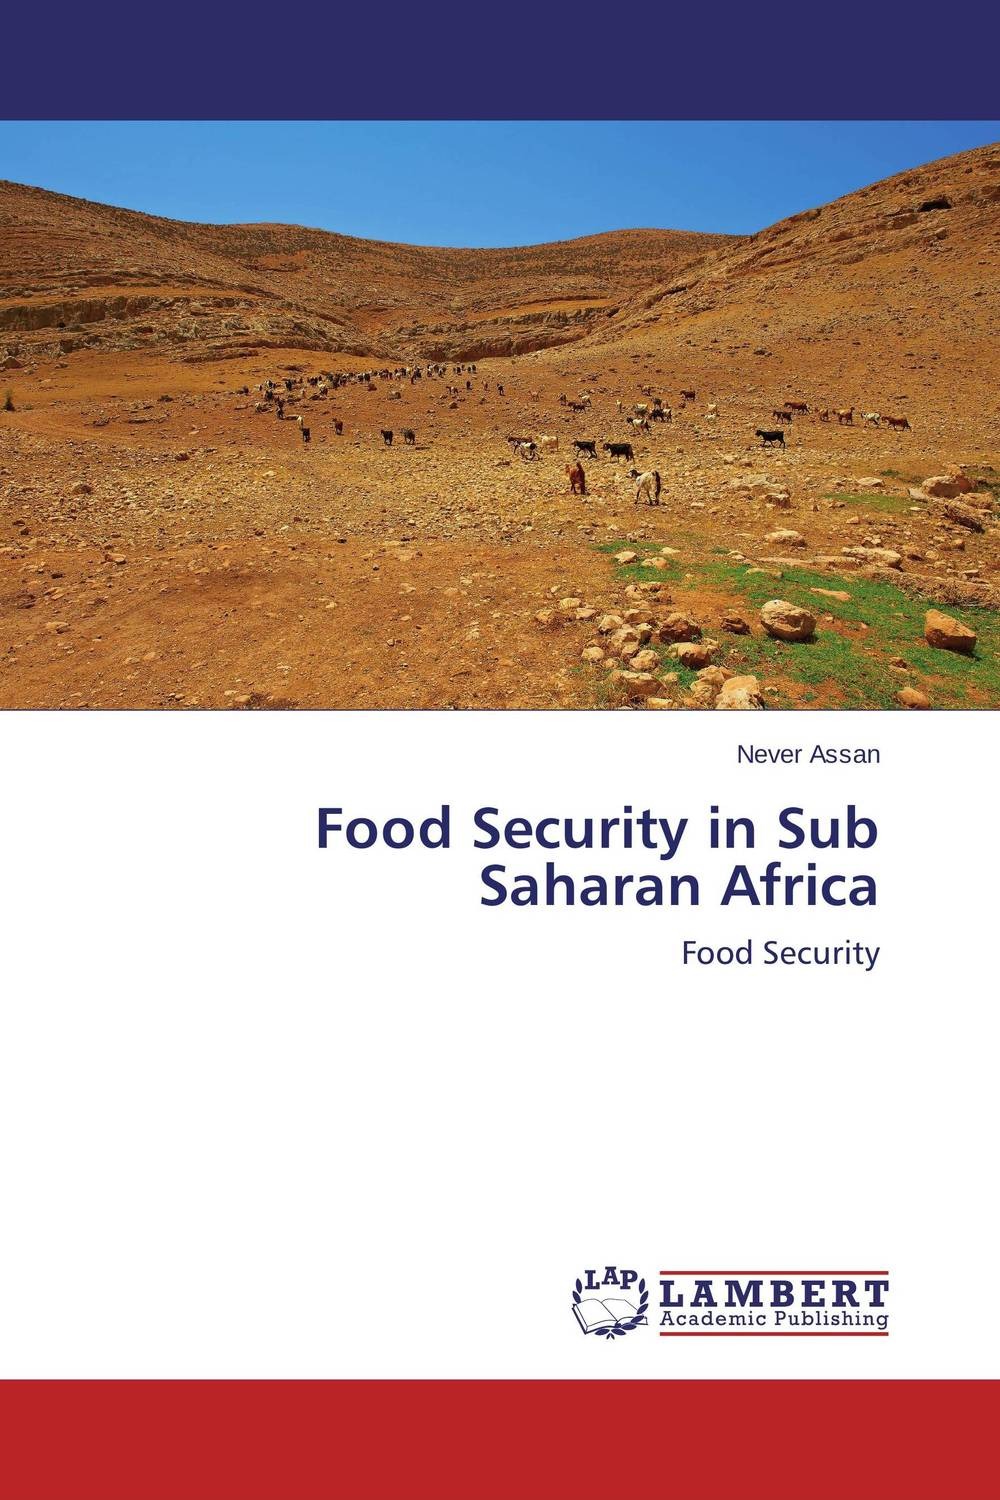 Food Security in Sub Saharan Africa chinedu chinedu the debt growth link in sub saharan africa